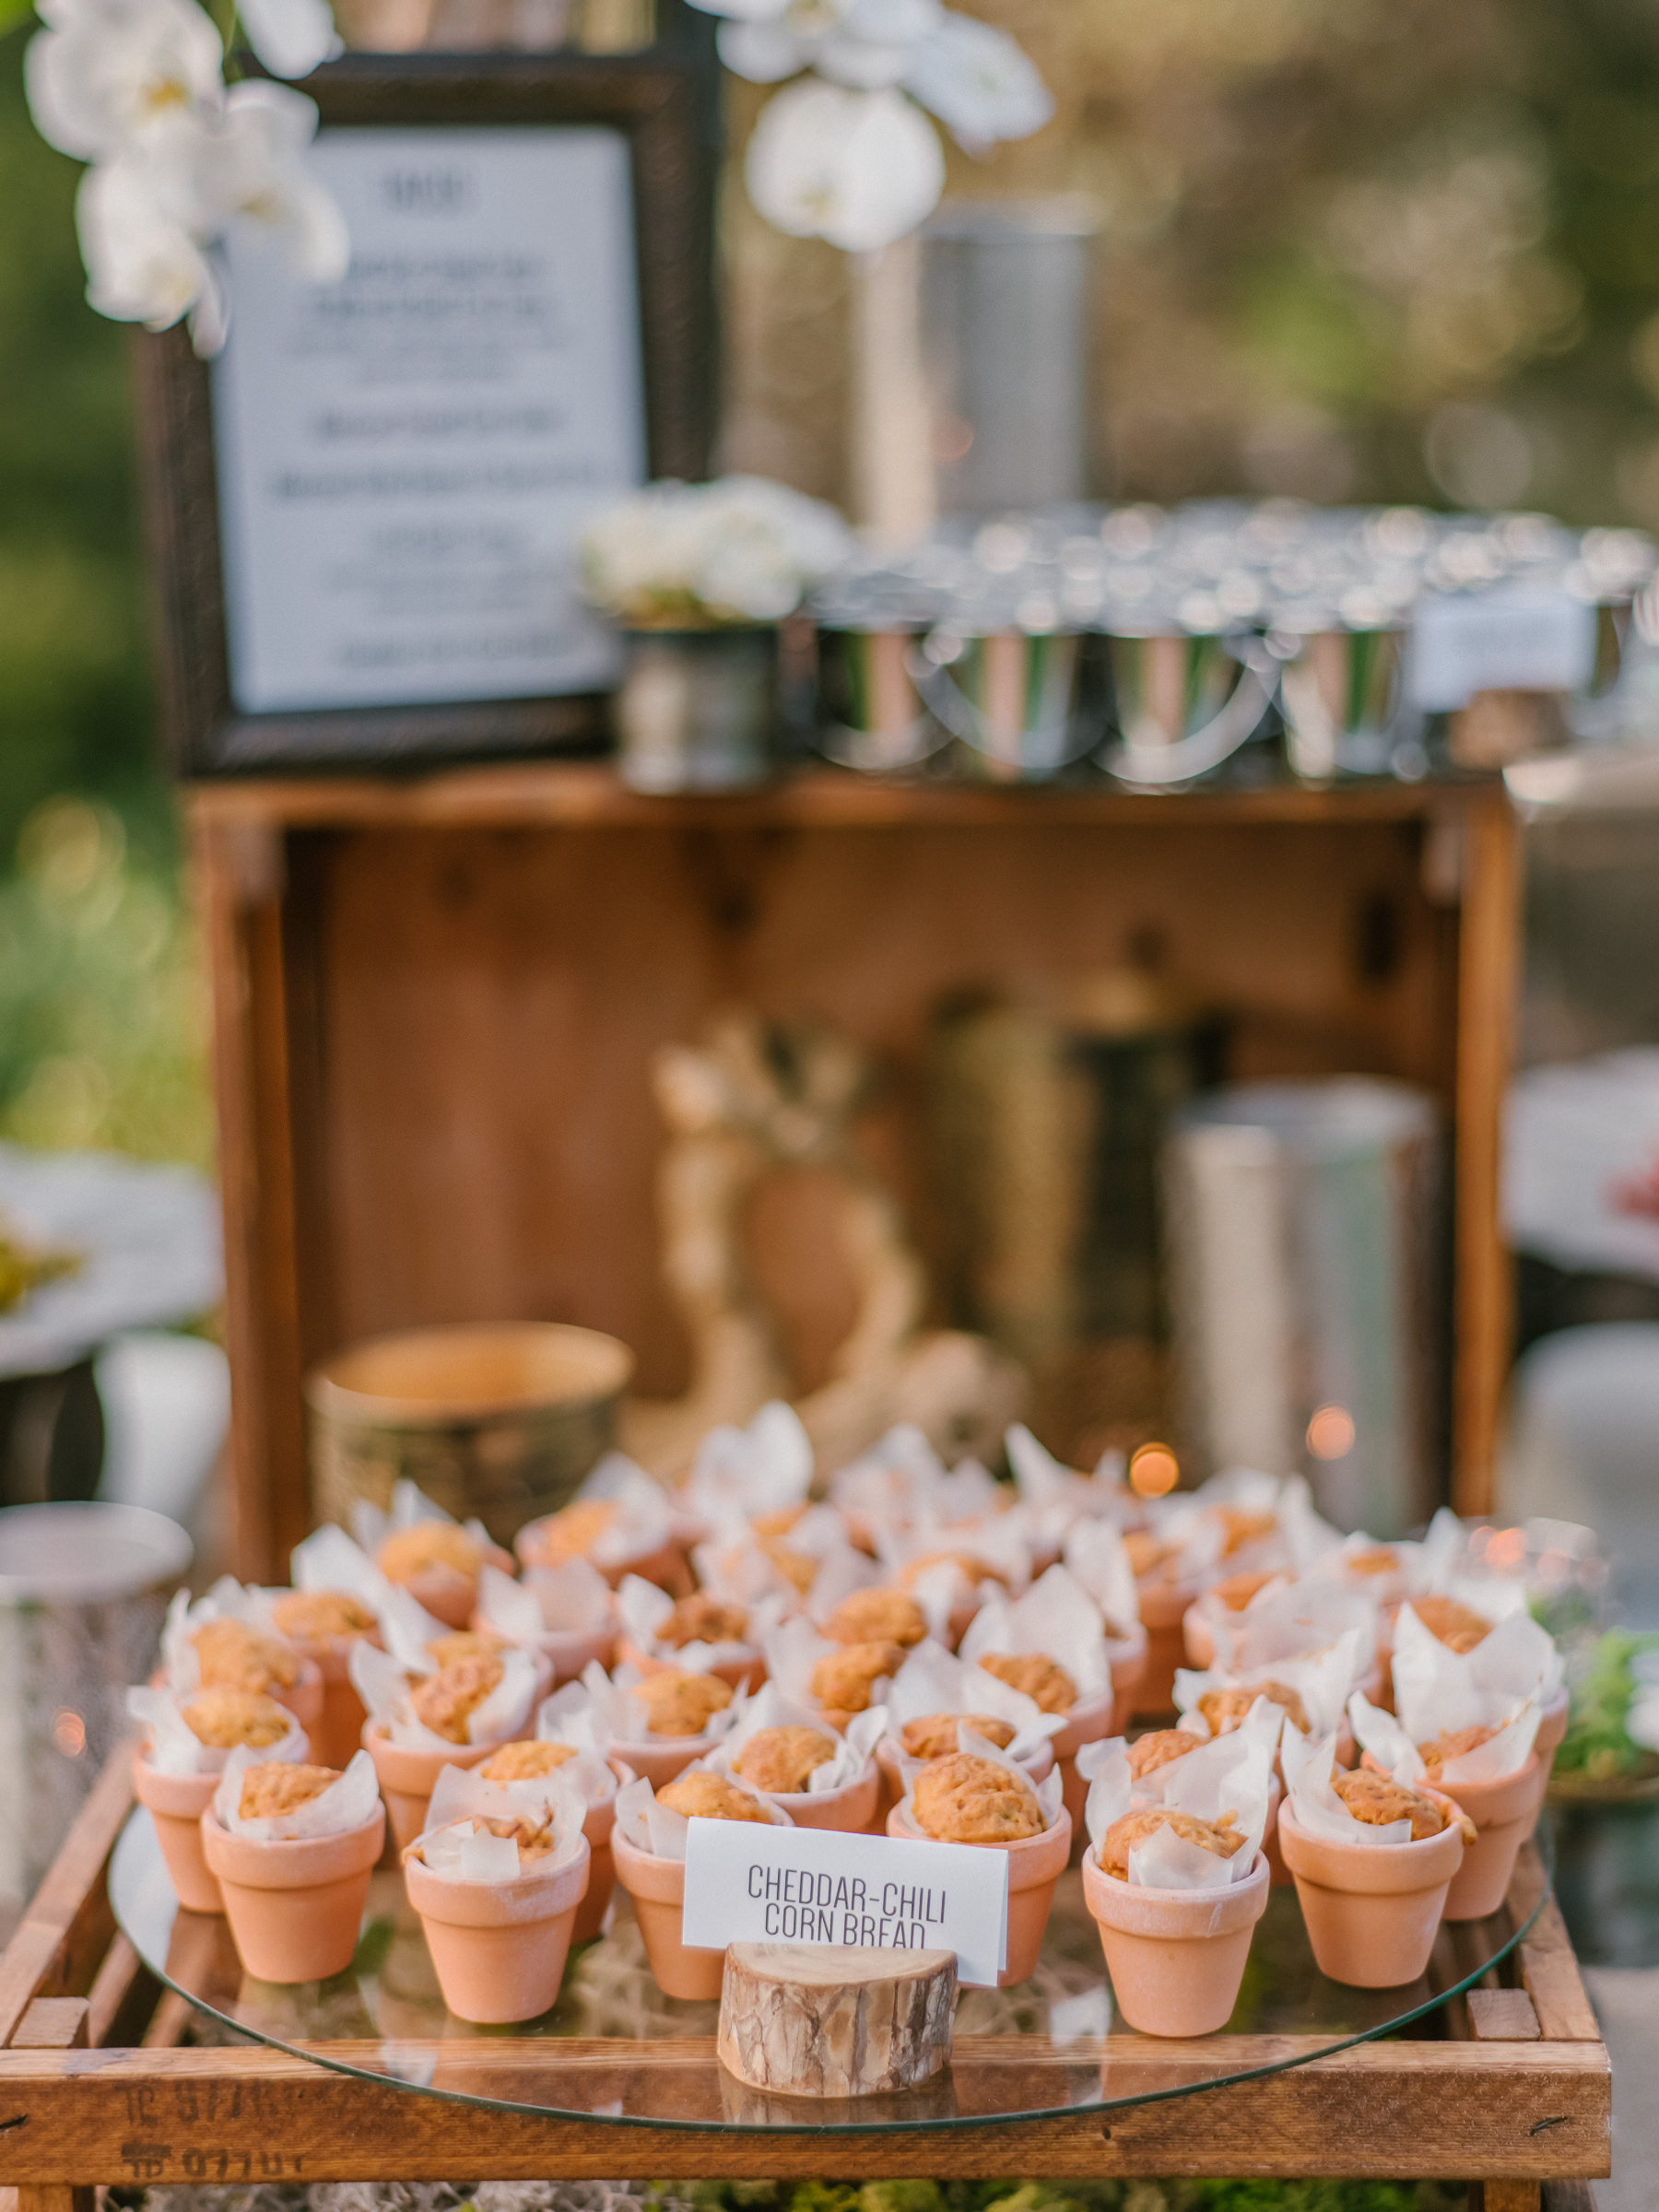 Reception menu cheddar chili corn bread in small flowerpots - photo by Amy and Stuart Photography